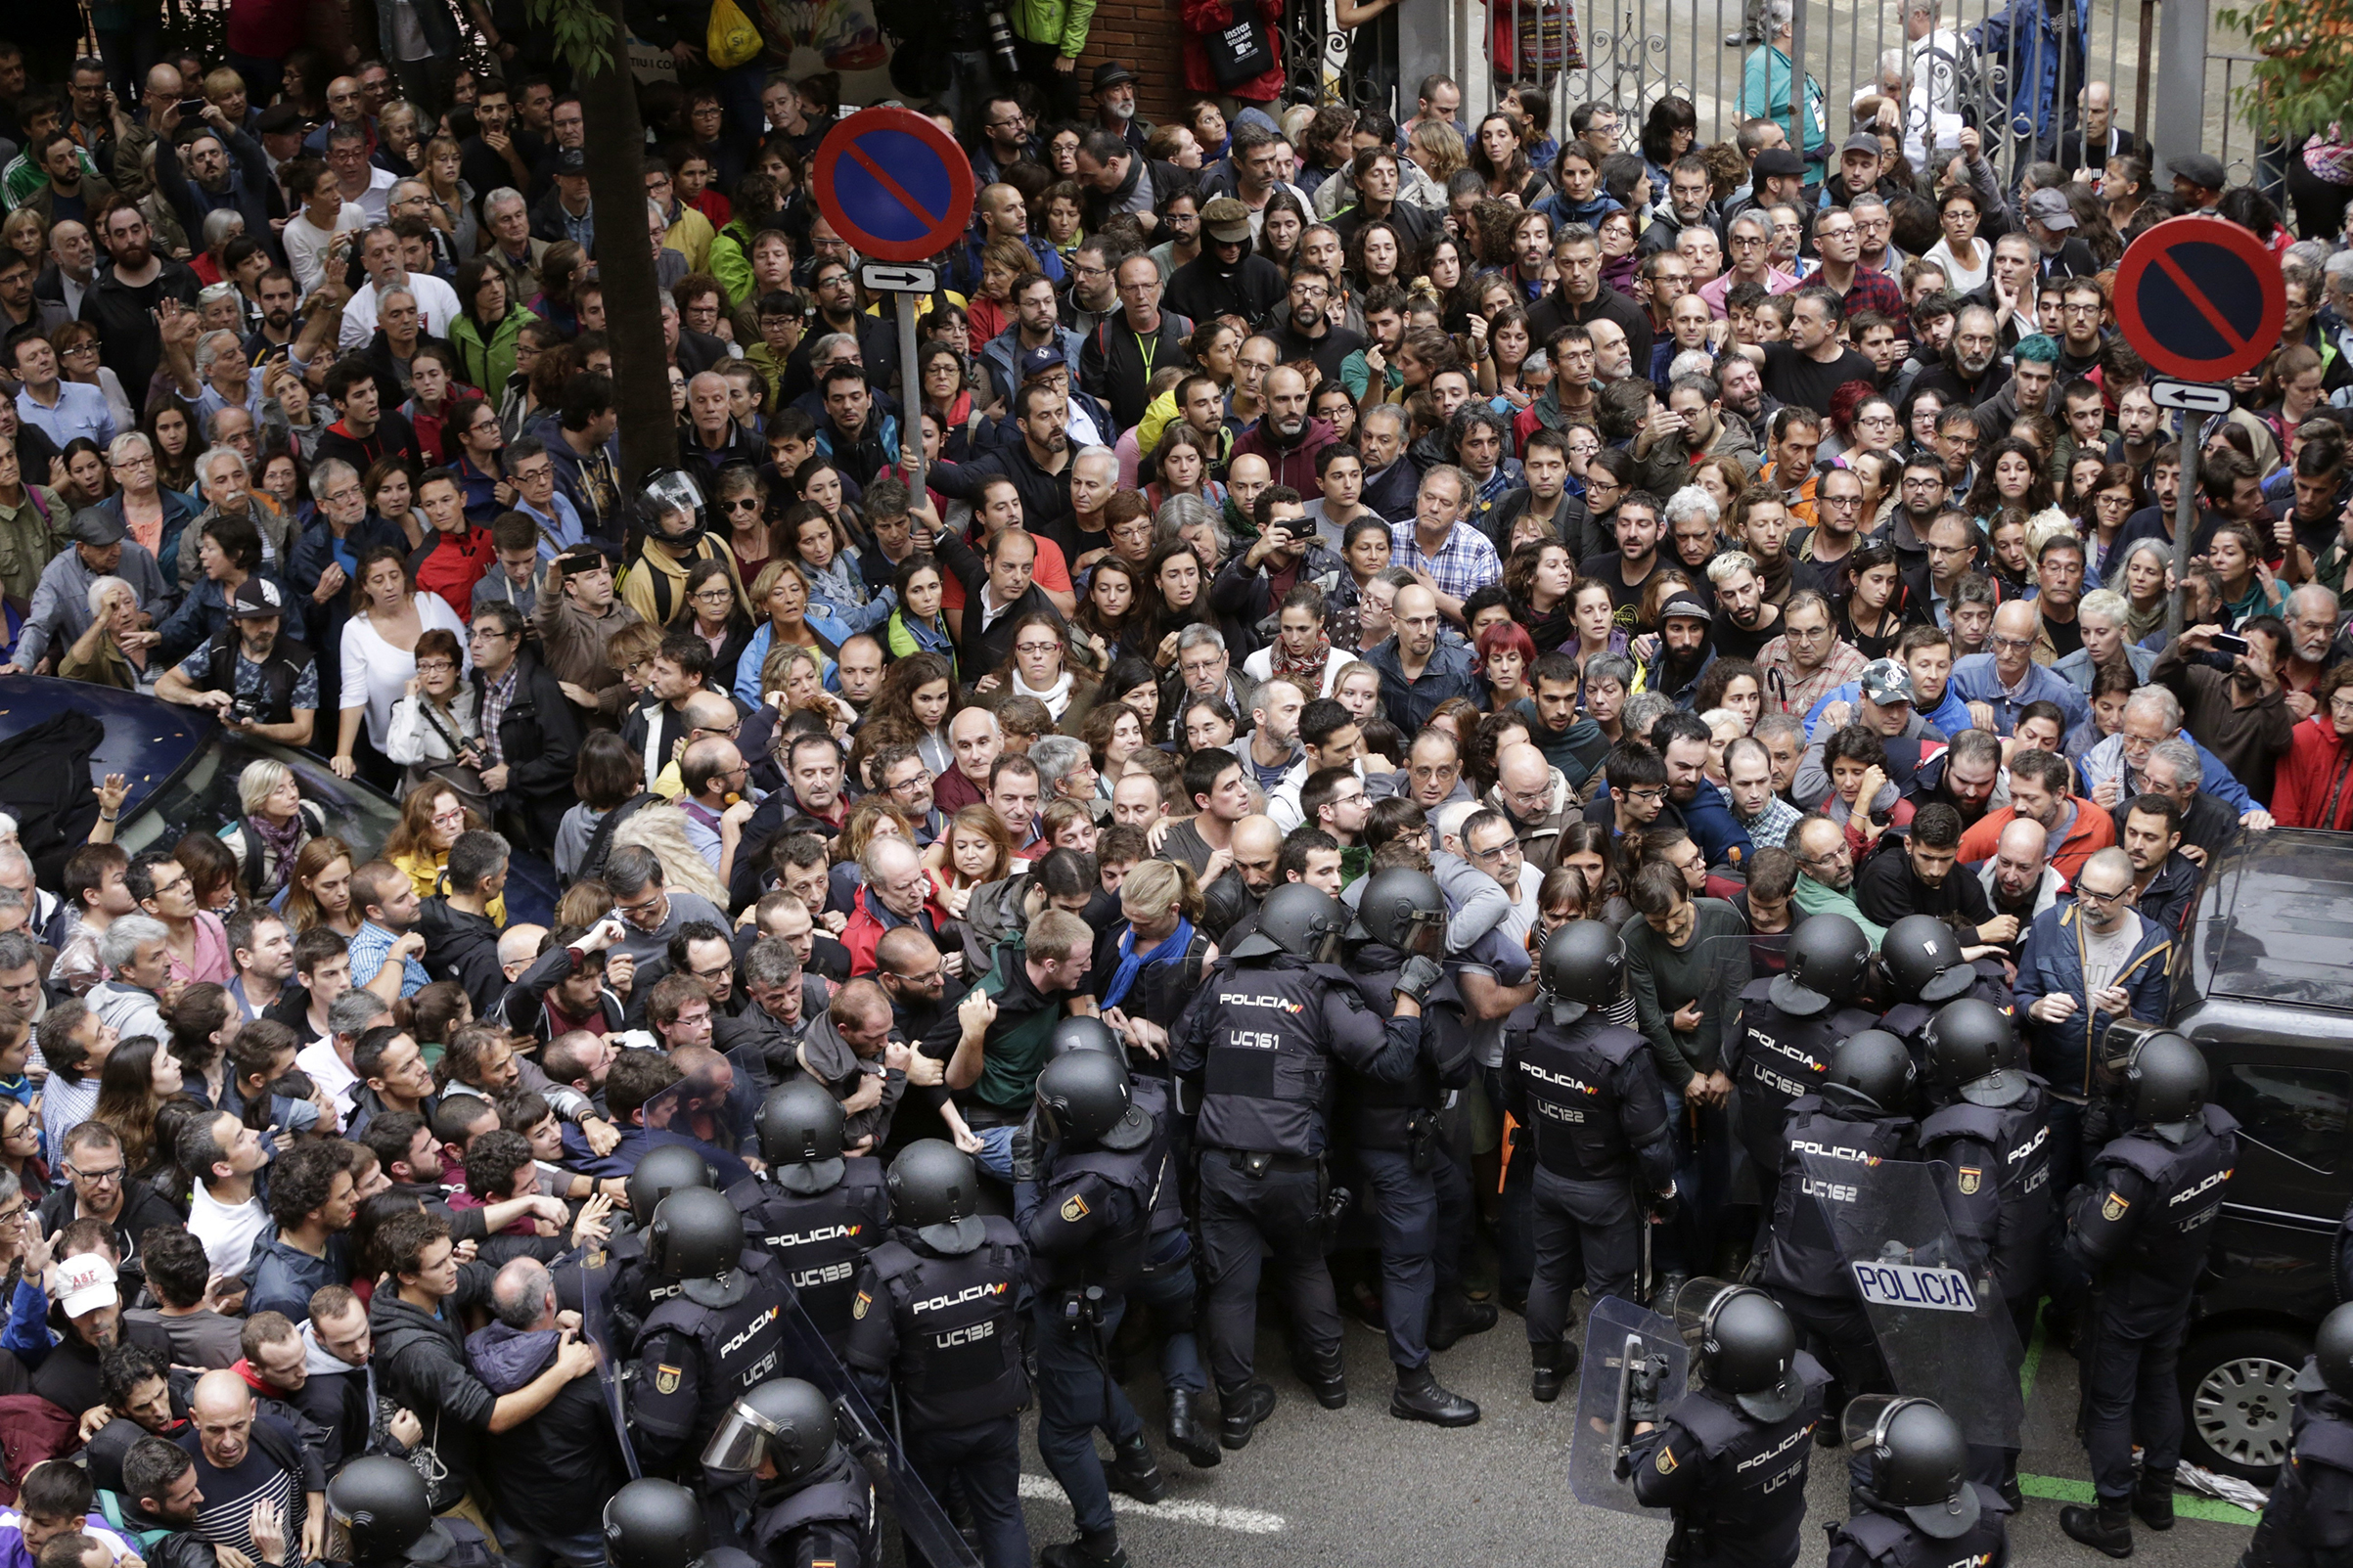 Spanish riot police form a security cordon around the Ramon Llull school during the Catalan independence referendum in Barcelona on Oct. 1, 2017.